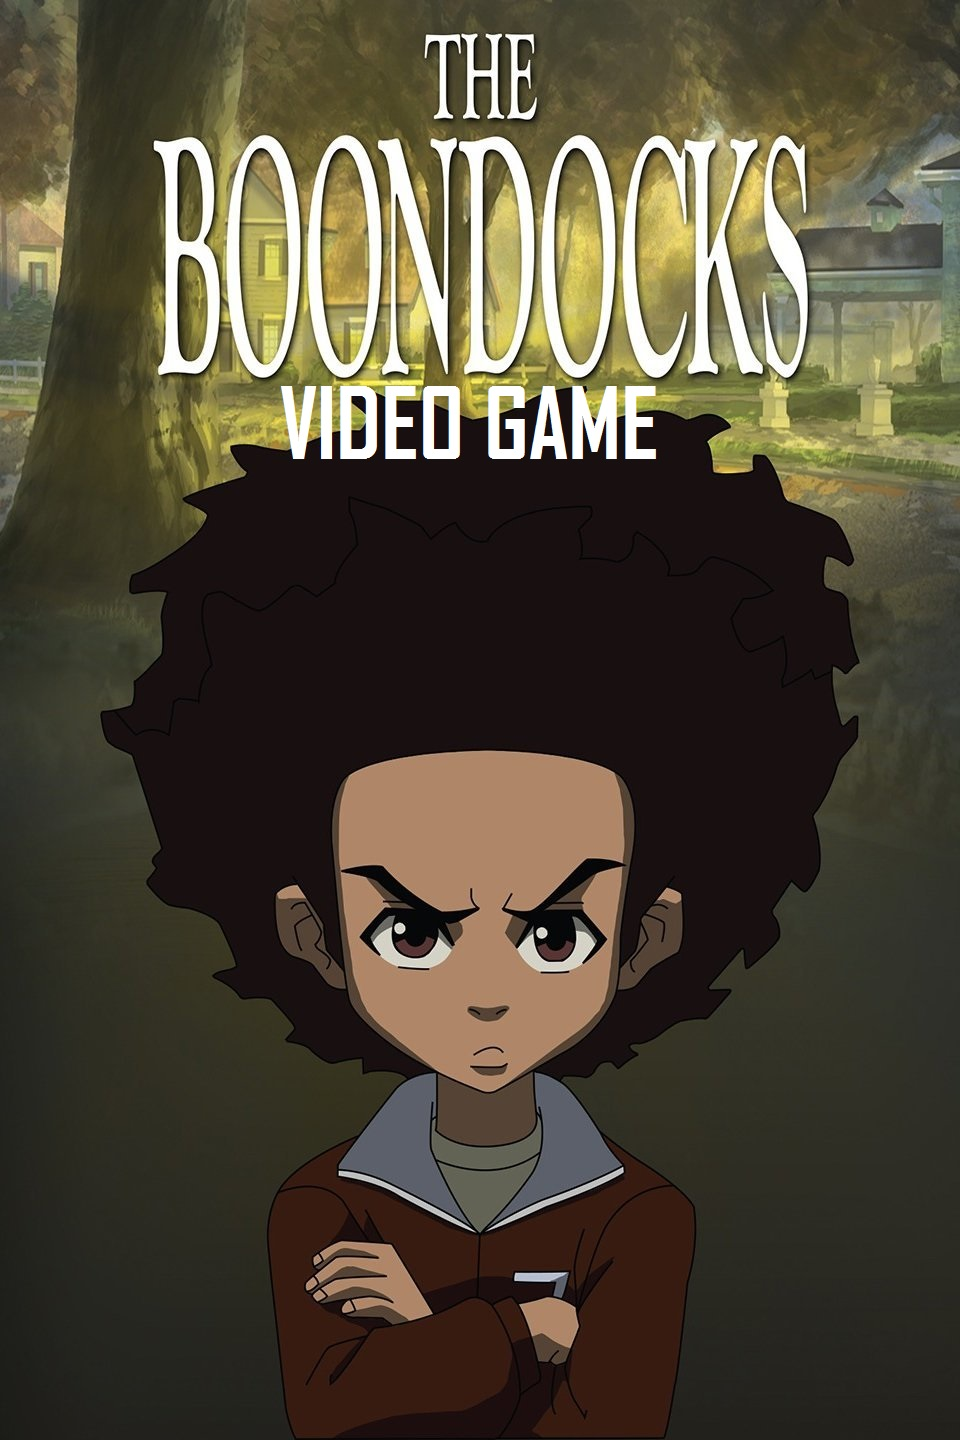 The Boondocks (video game)